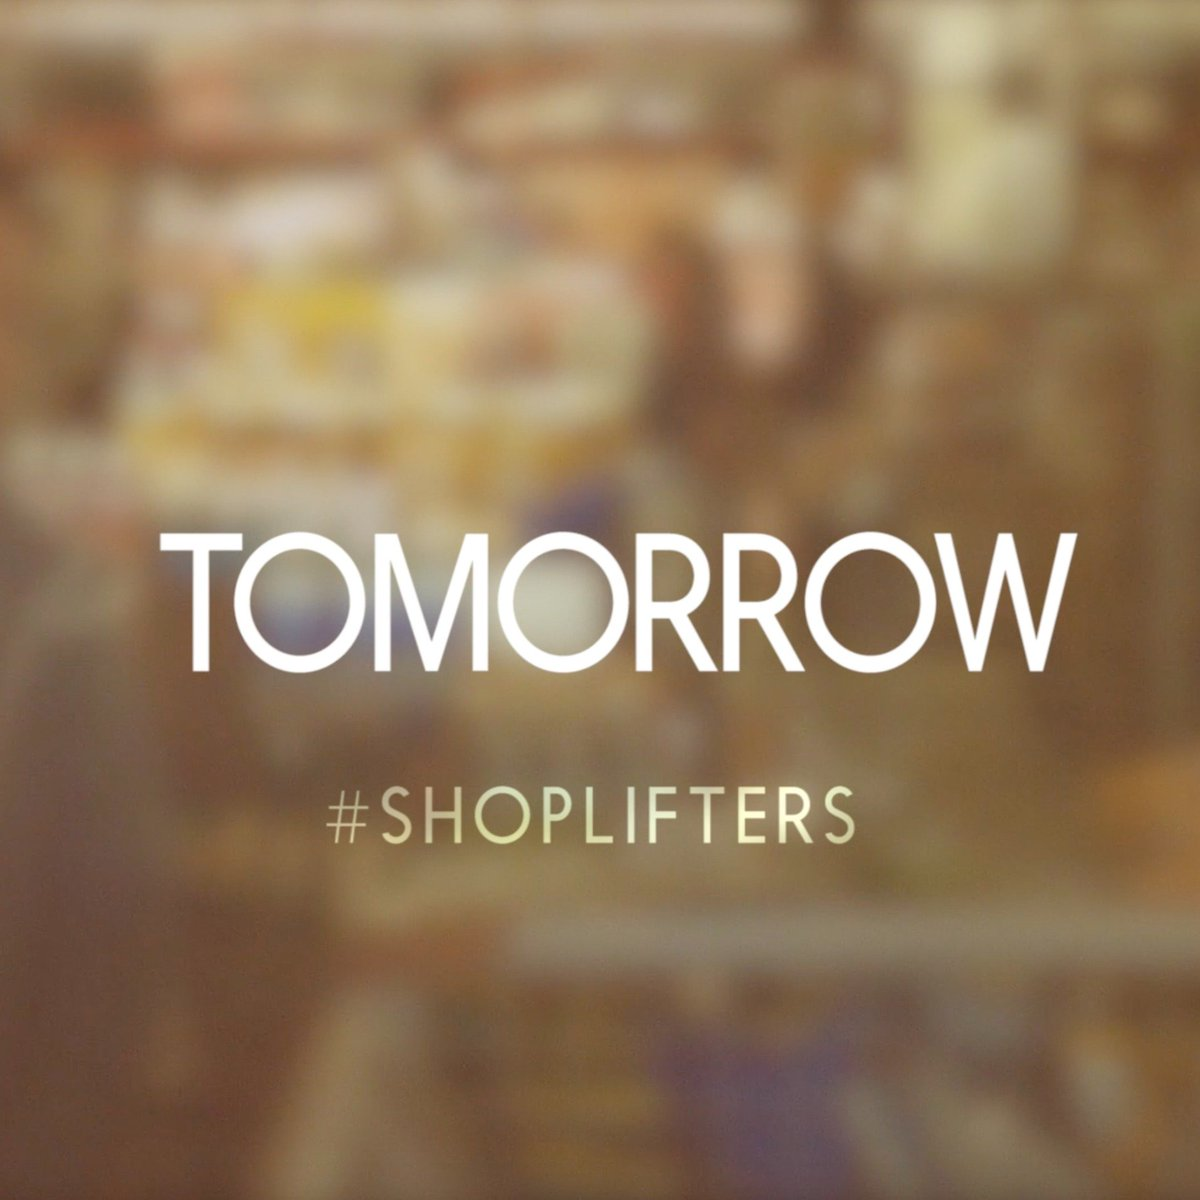 """SIMPLY ONE OF THE BEST FILMS OF THE YEAR, PERIOD."" – @Vice @ShopliftersFilm is available on digital and DVD TOMORROW! http://bit.ly/OwnShoplifters"